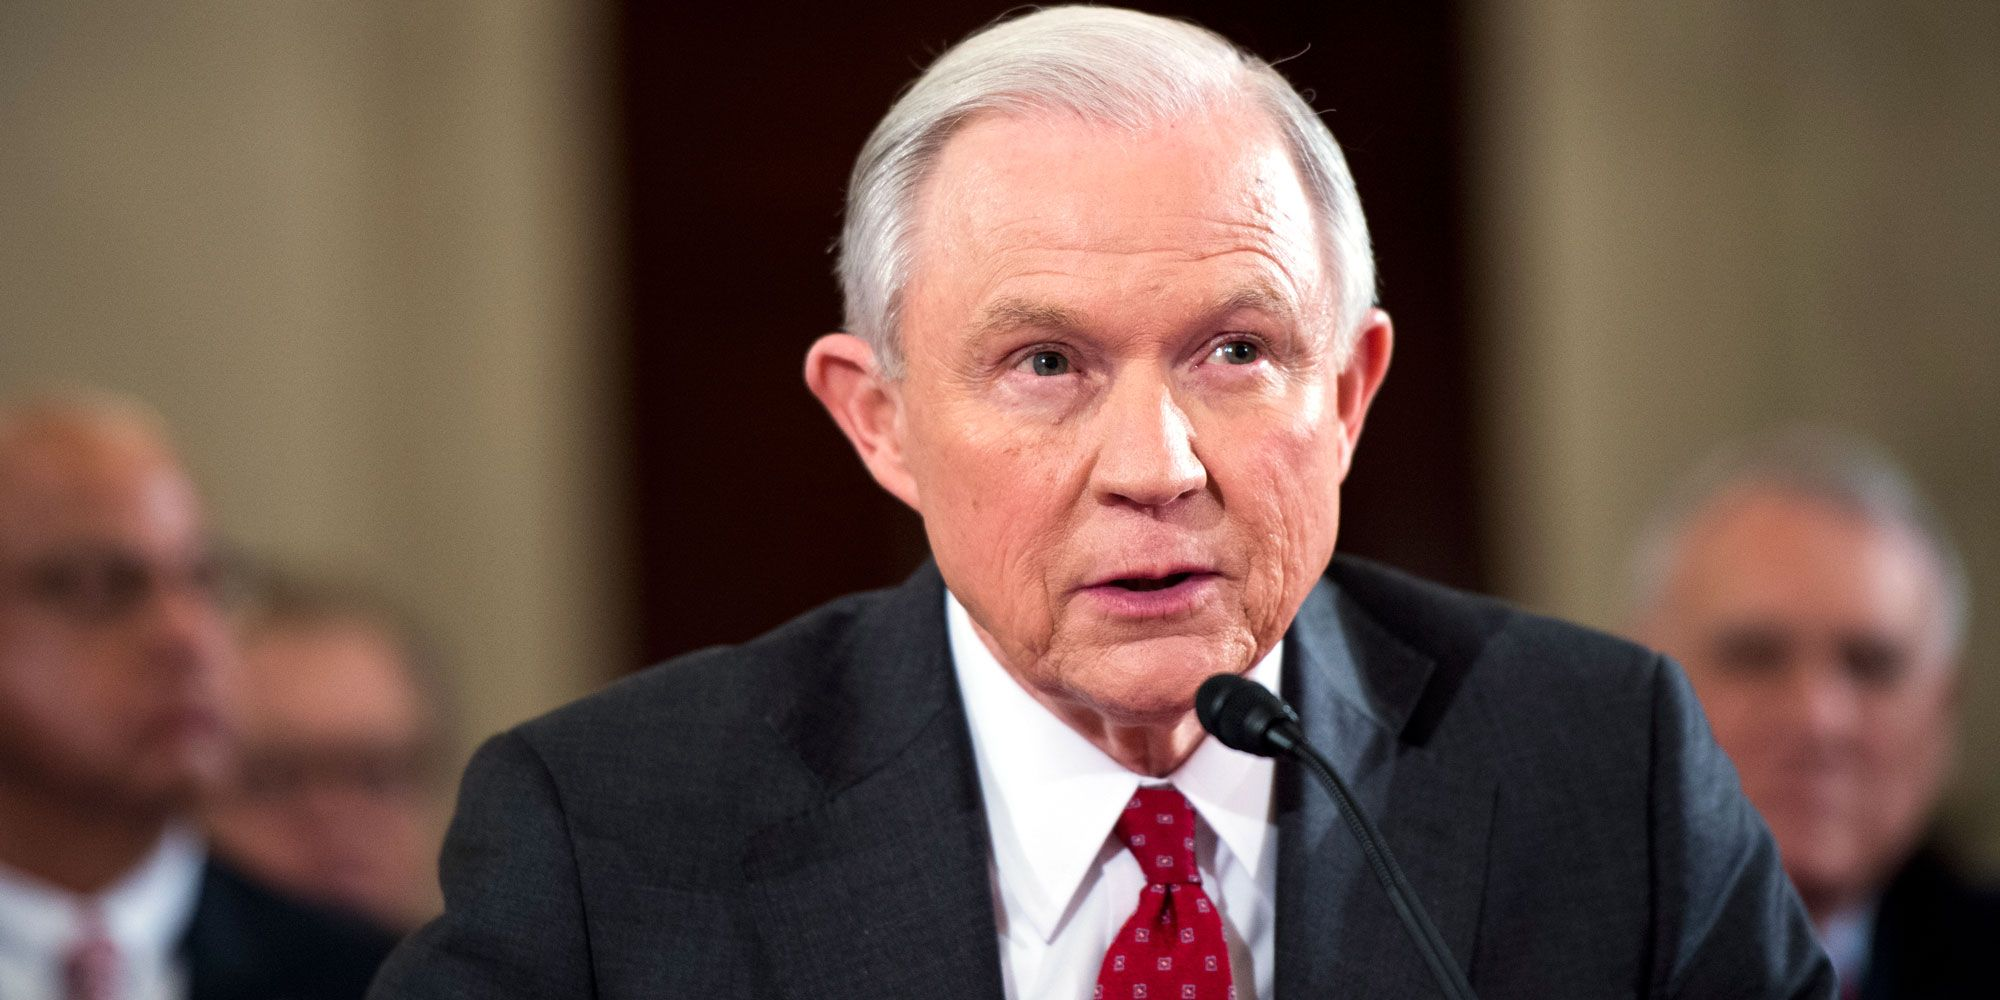 Meet Jeff Sessions - Who Is Donald Trump's Attorney General Jeff Sessions